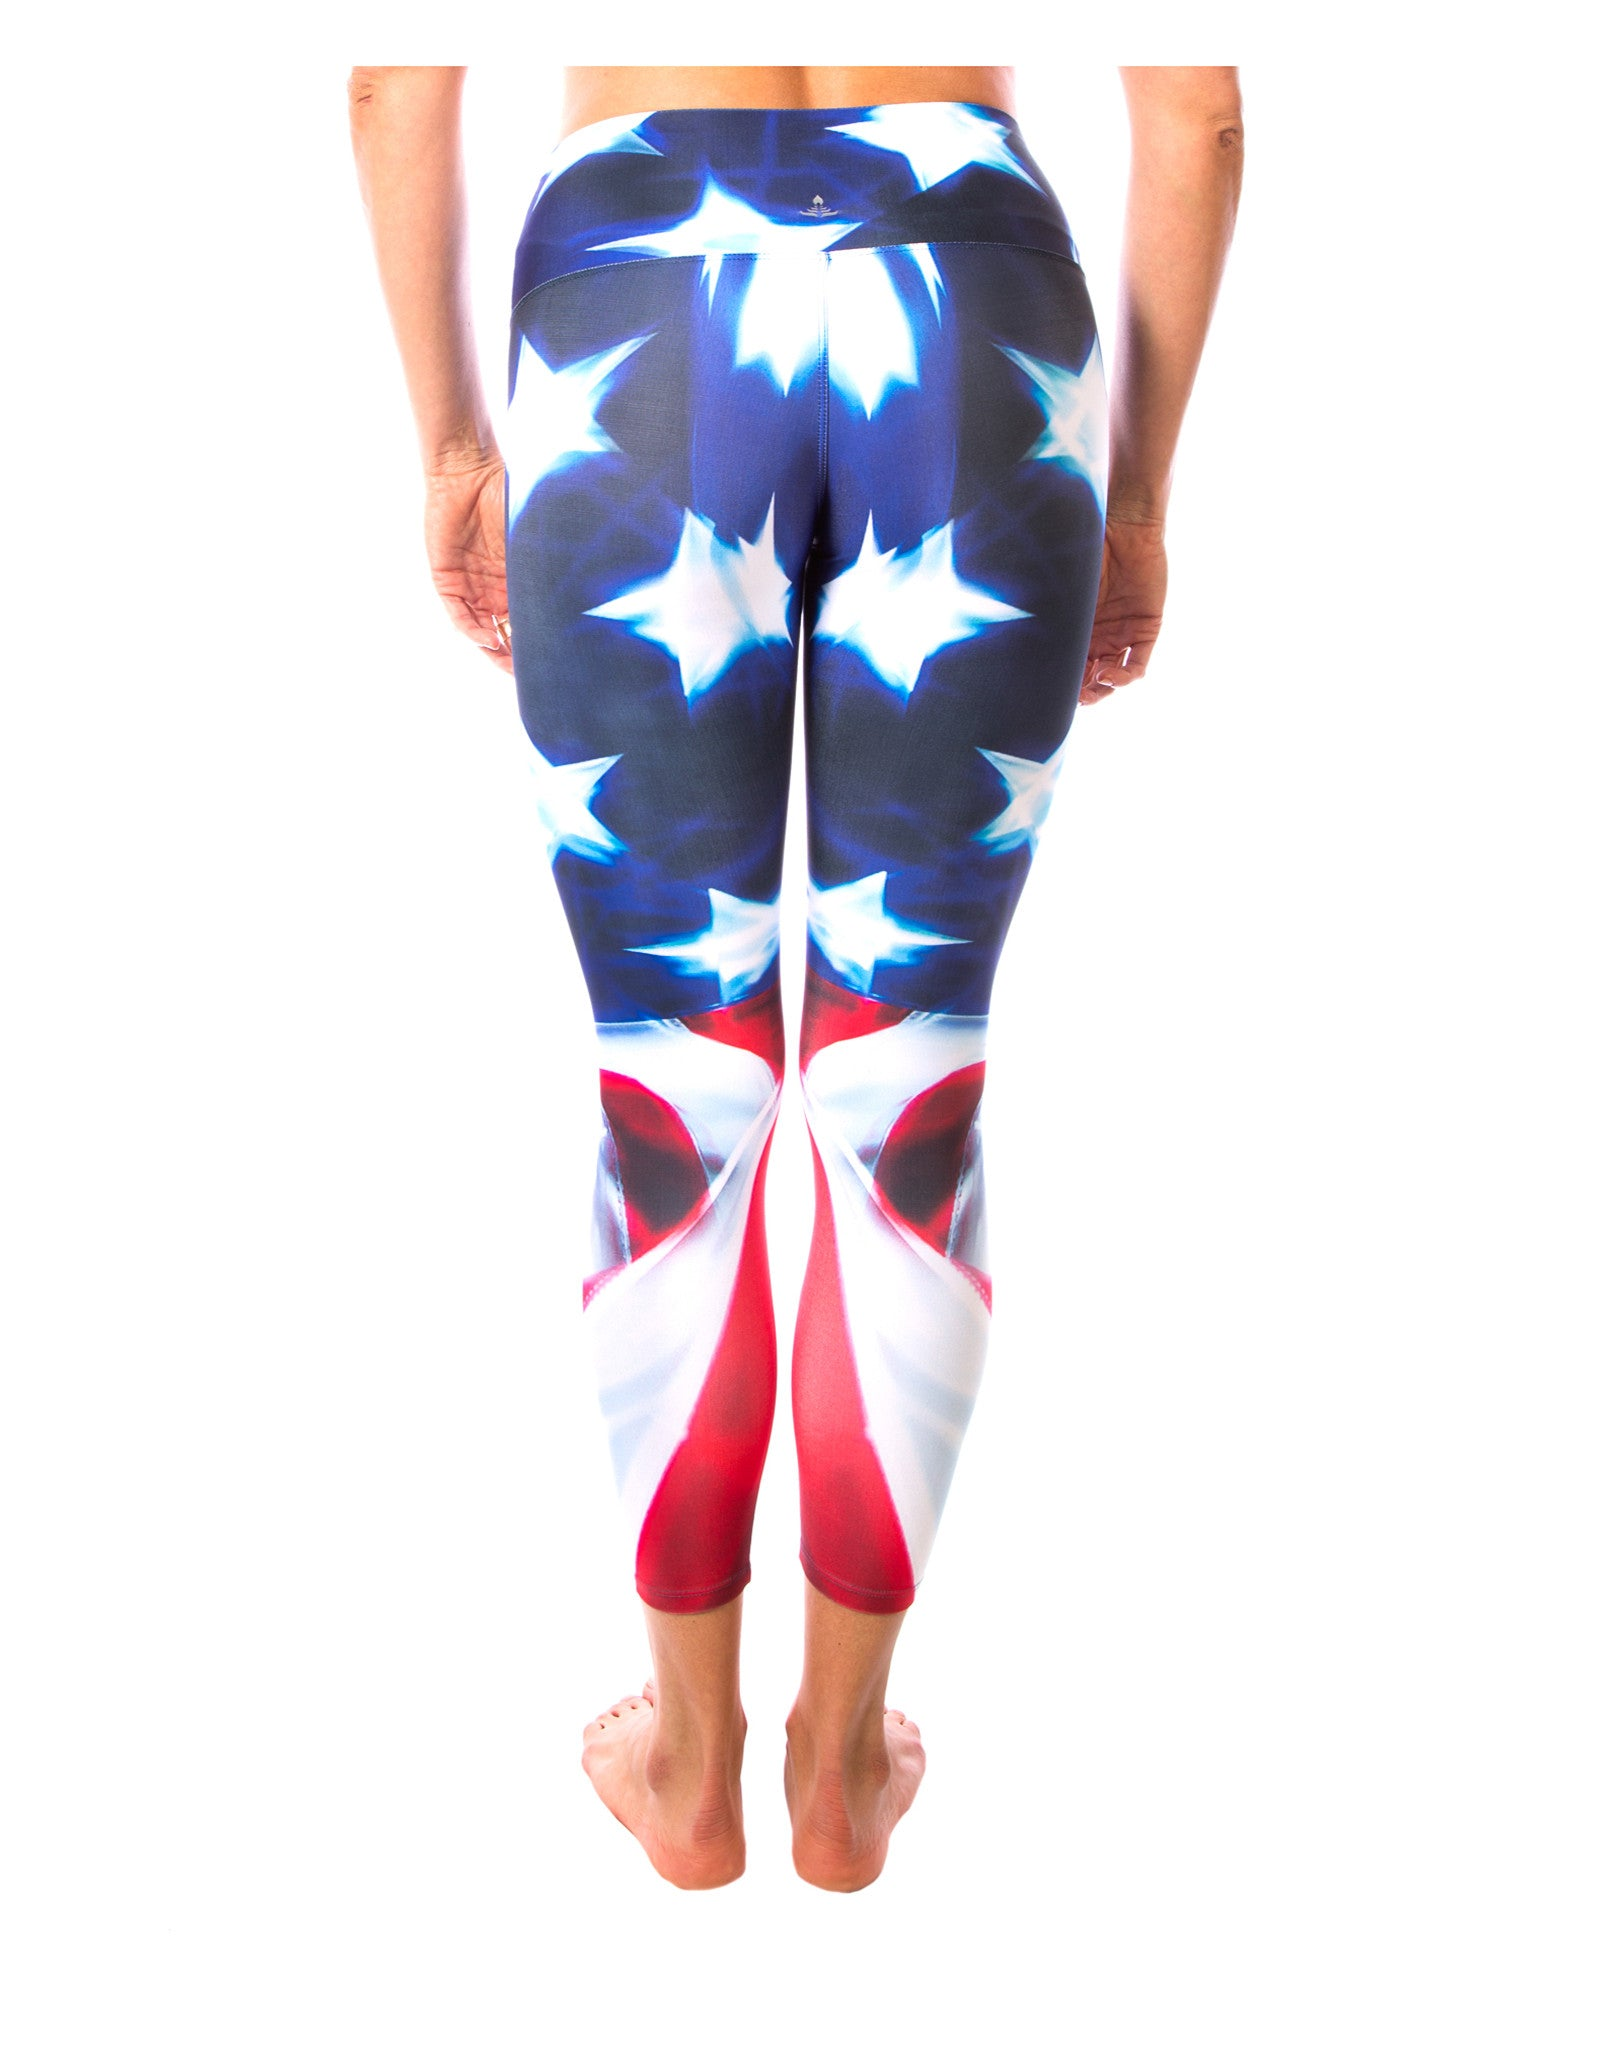 Patriotic Yoga Pants- American Flag One Legging from the Patriotic Me LavaLoka Yoga Pants Collection. Show the Patriot in You. Hit the gym in Red, White and Blue Stars and Stripes.